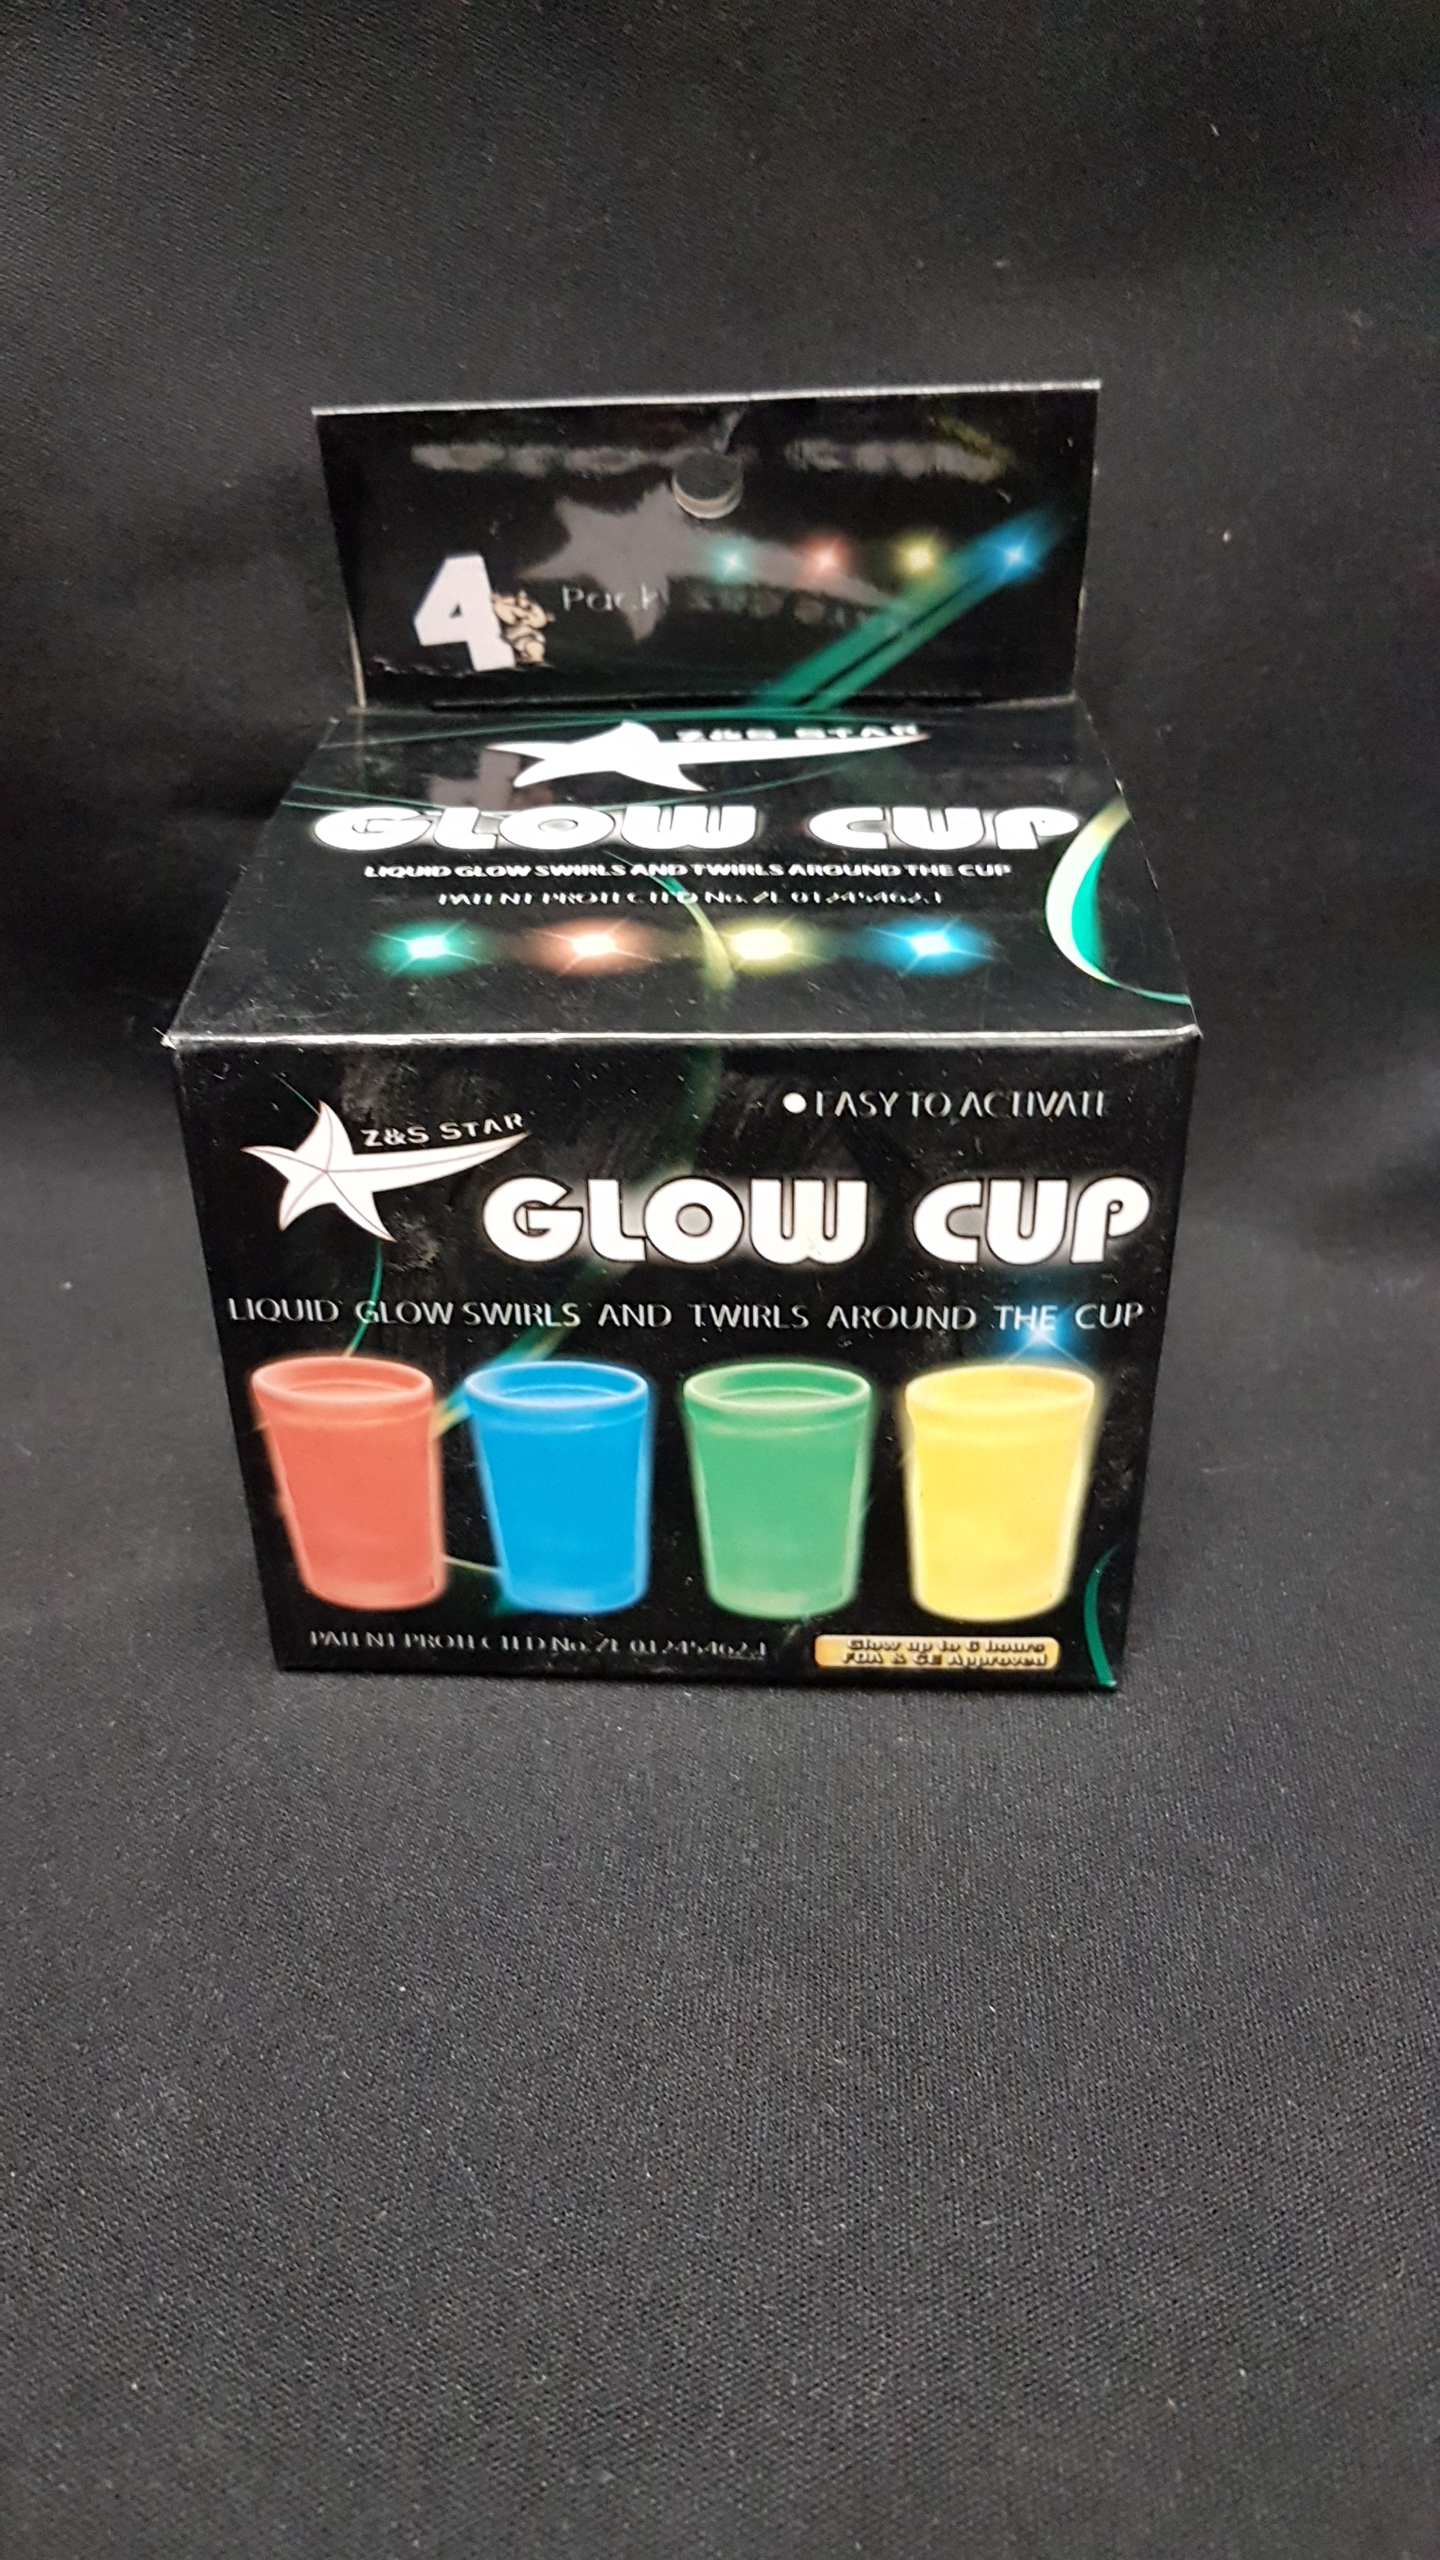 Glow cup 4 pack $1.00